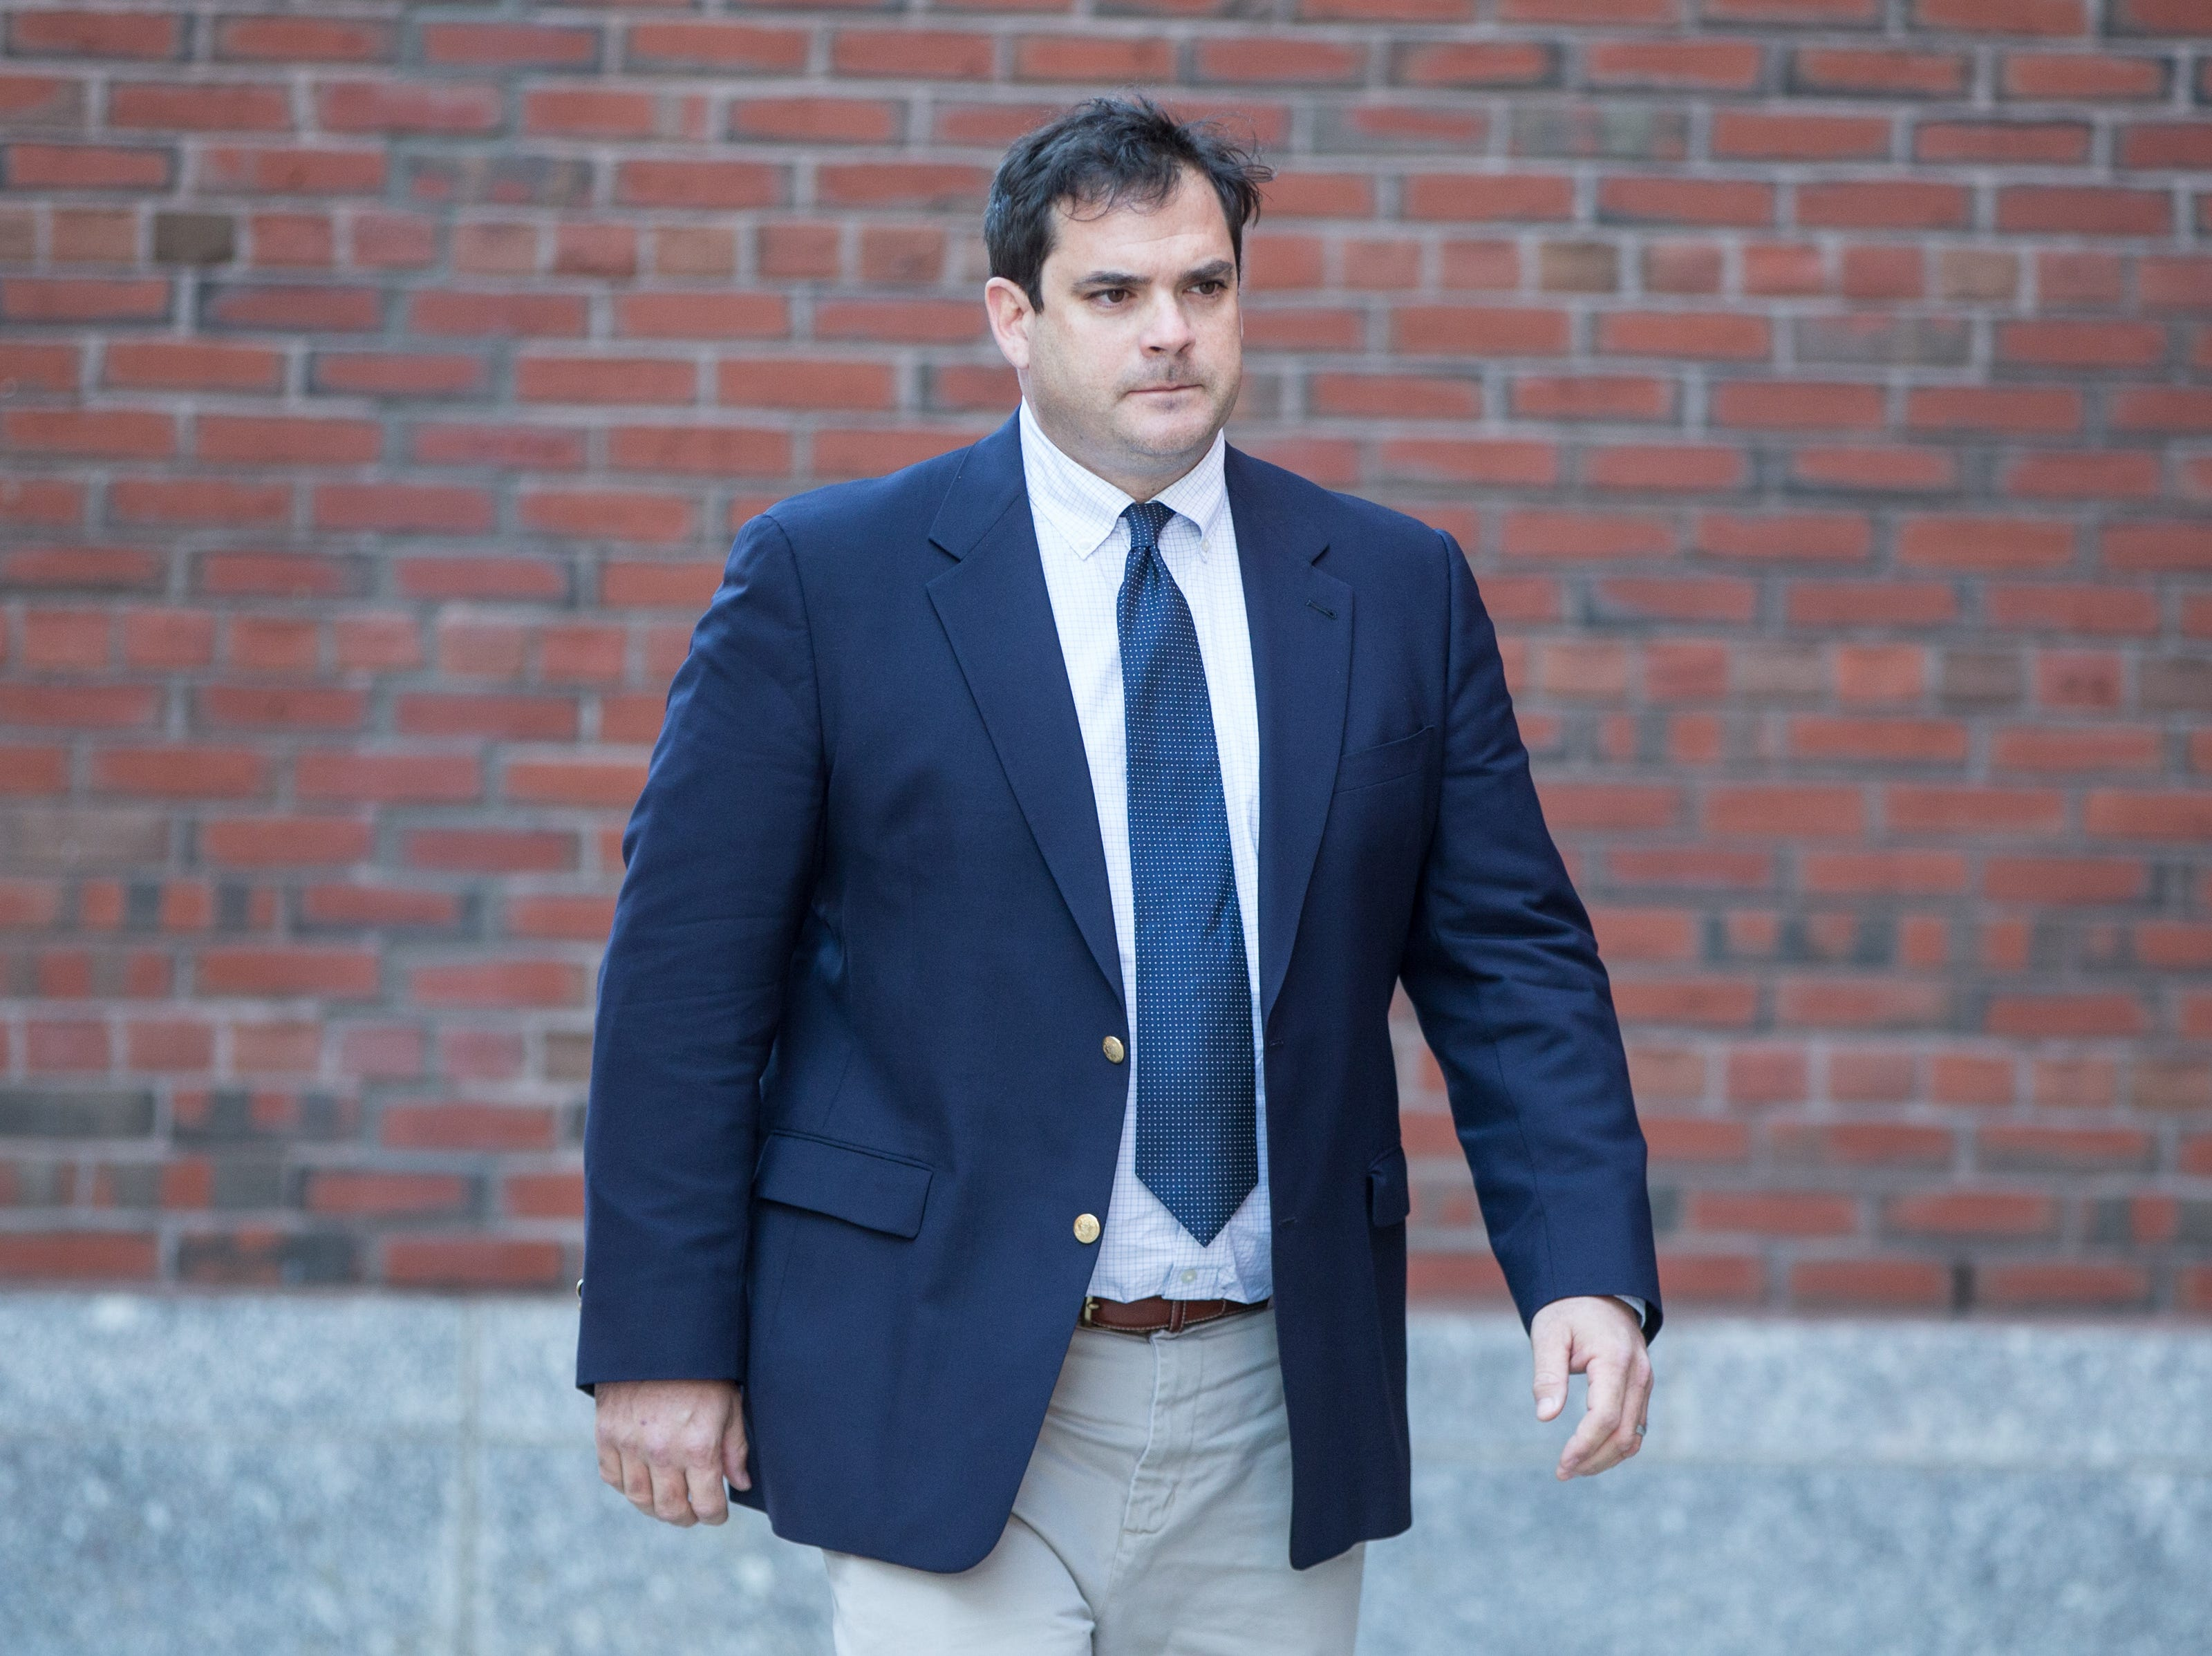 Stanford sailing coach John Vandemoer arrives at Boston Federal Court for an arraignment on March 12, 2019, in Boston. John Vandemoer is among several charged in alleged college admissions scam.